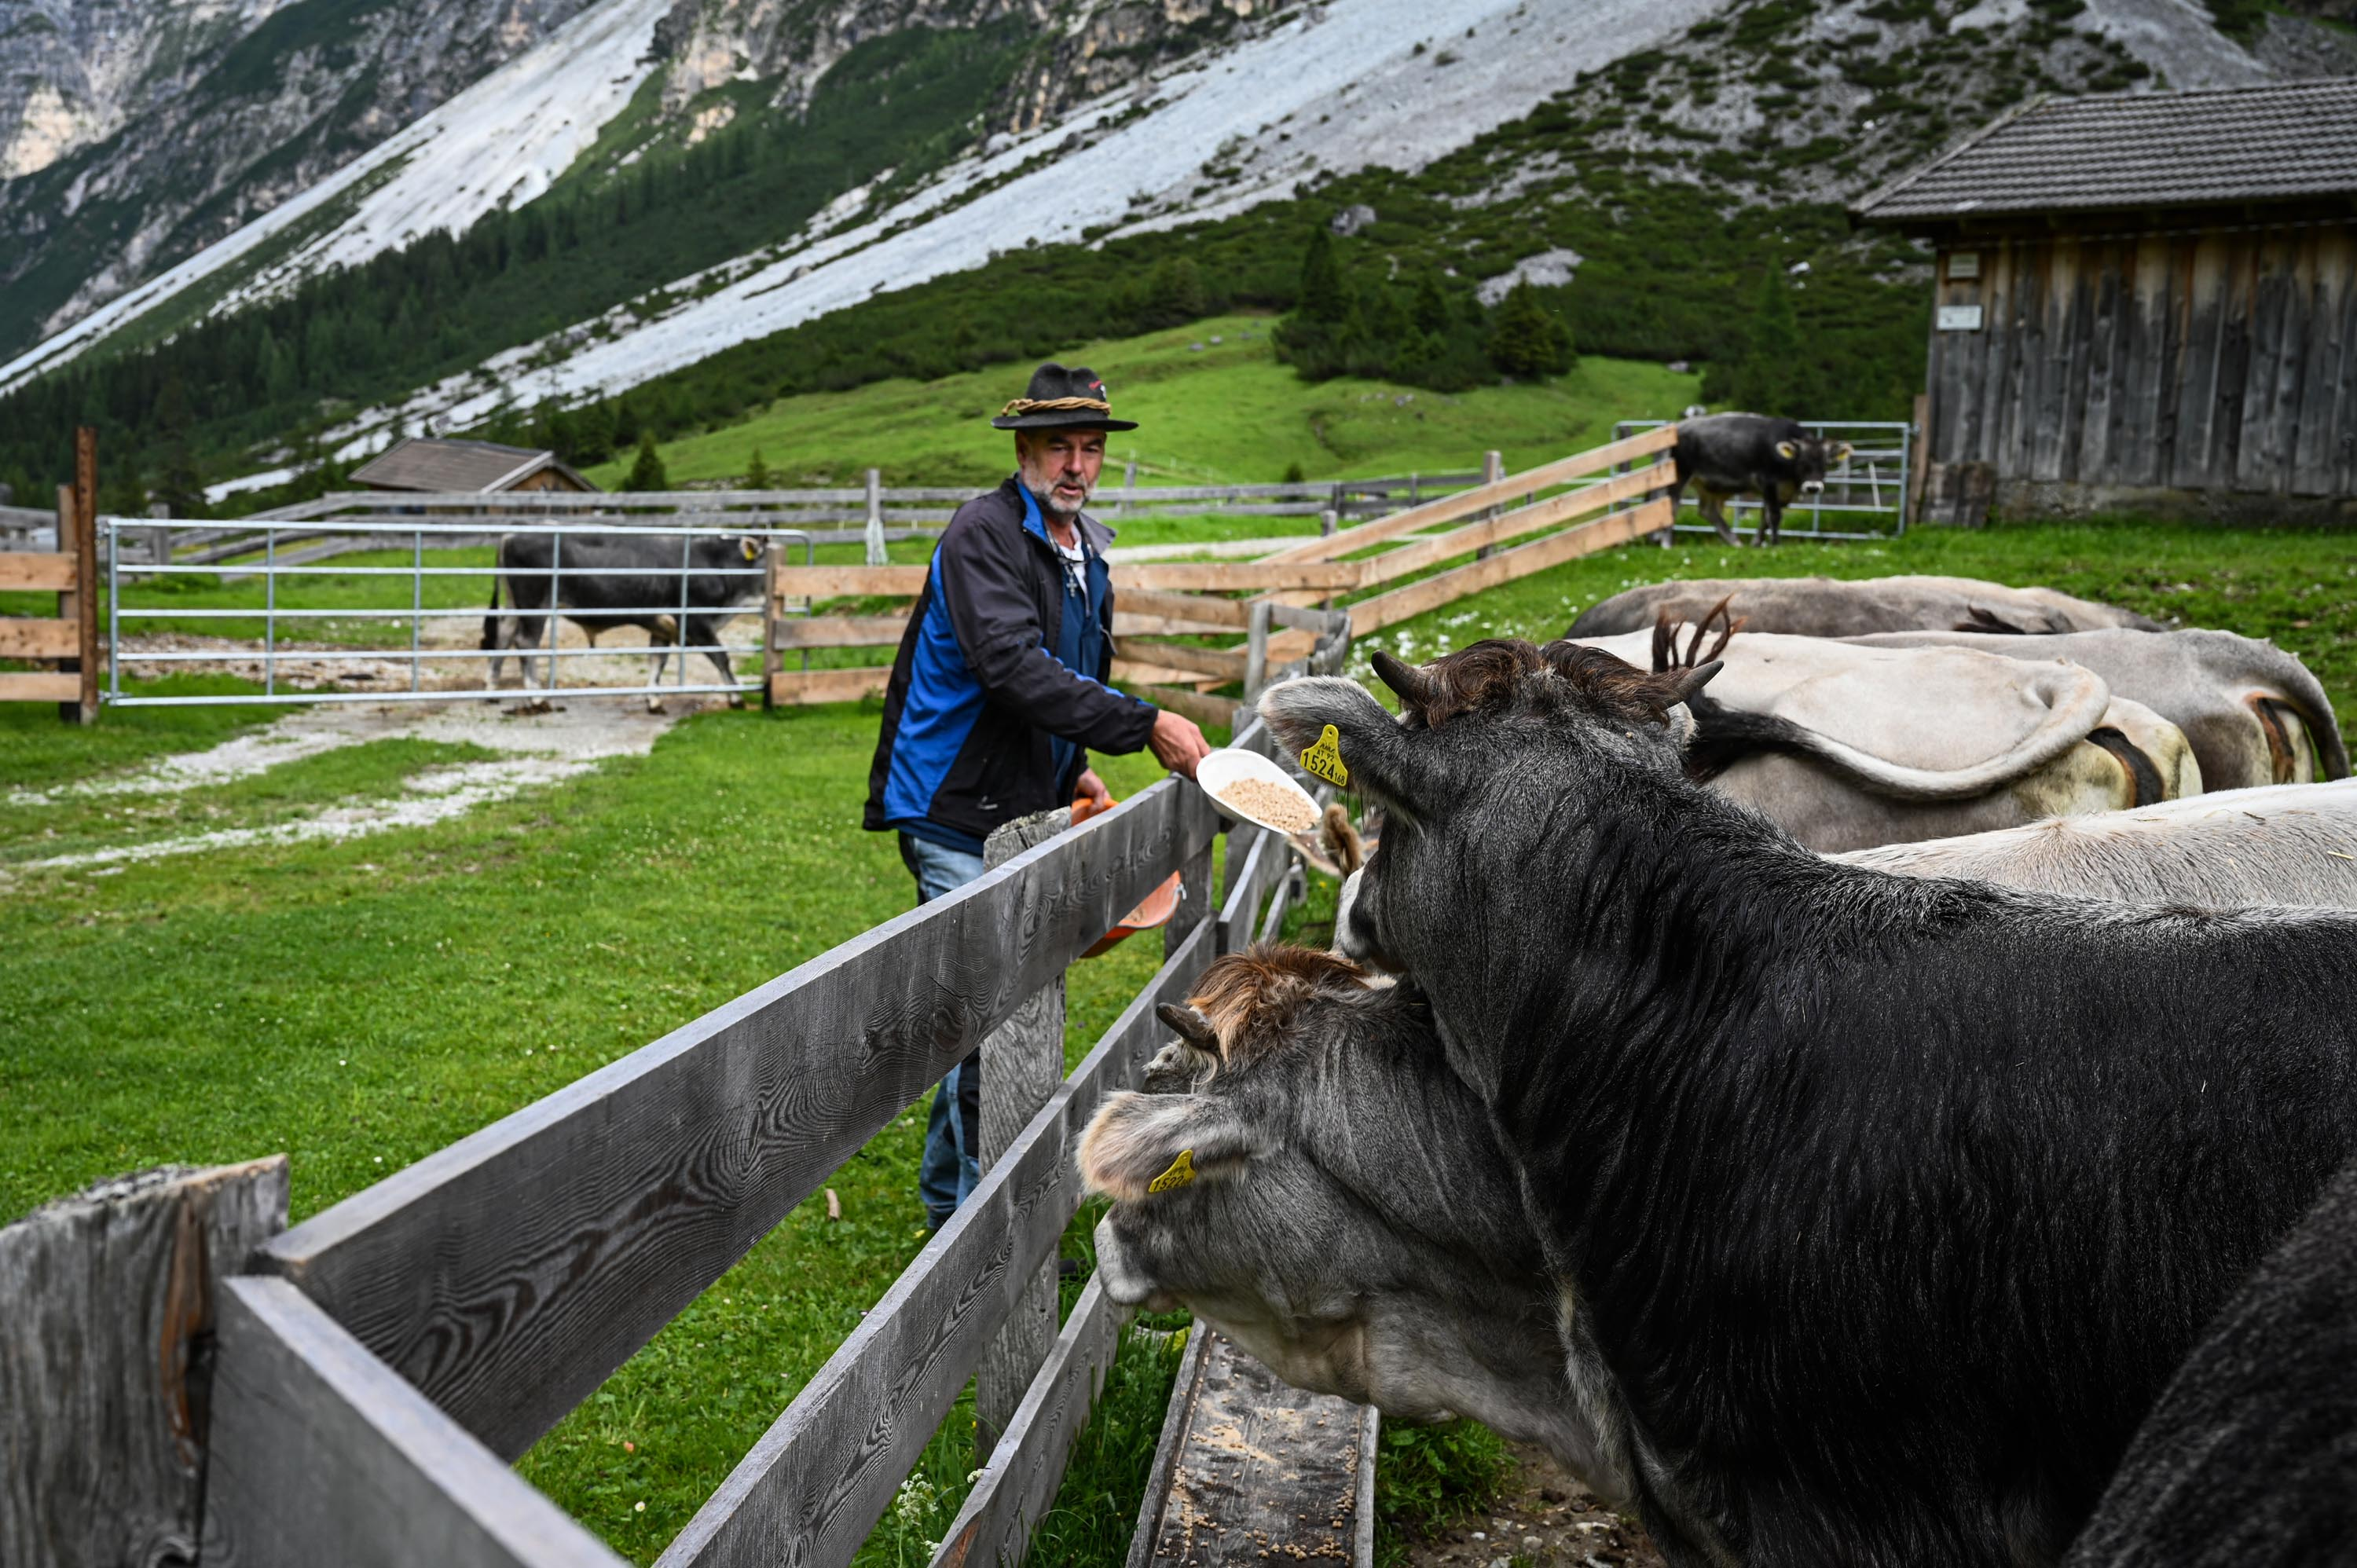 Reinhard Pfurtscheller feeds the cows and calves on his farm in the Austrian Alps. MUST CREDIT: photo for The Washington Post by Lena Mucha.